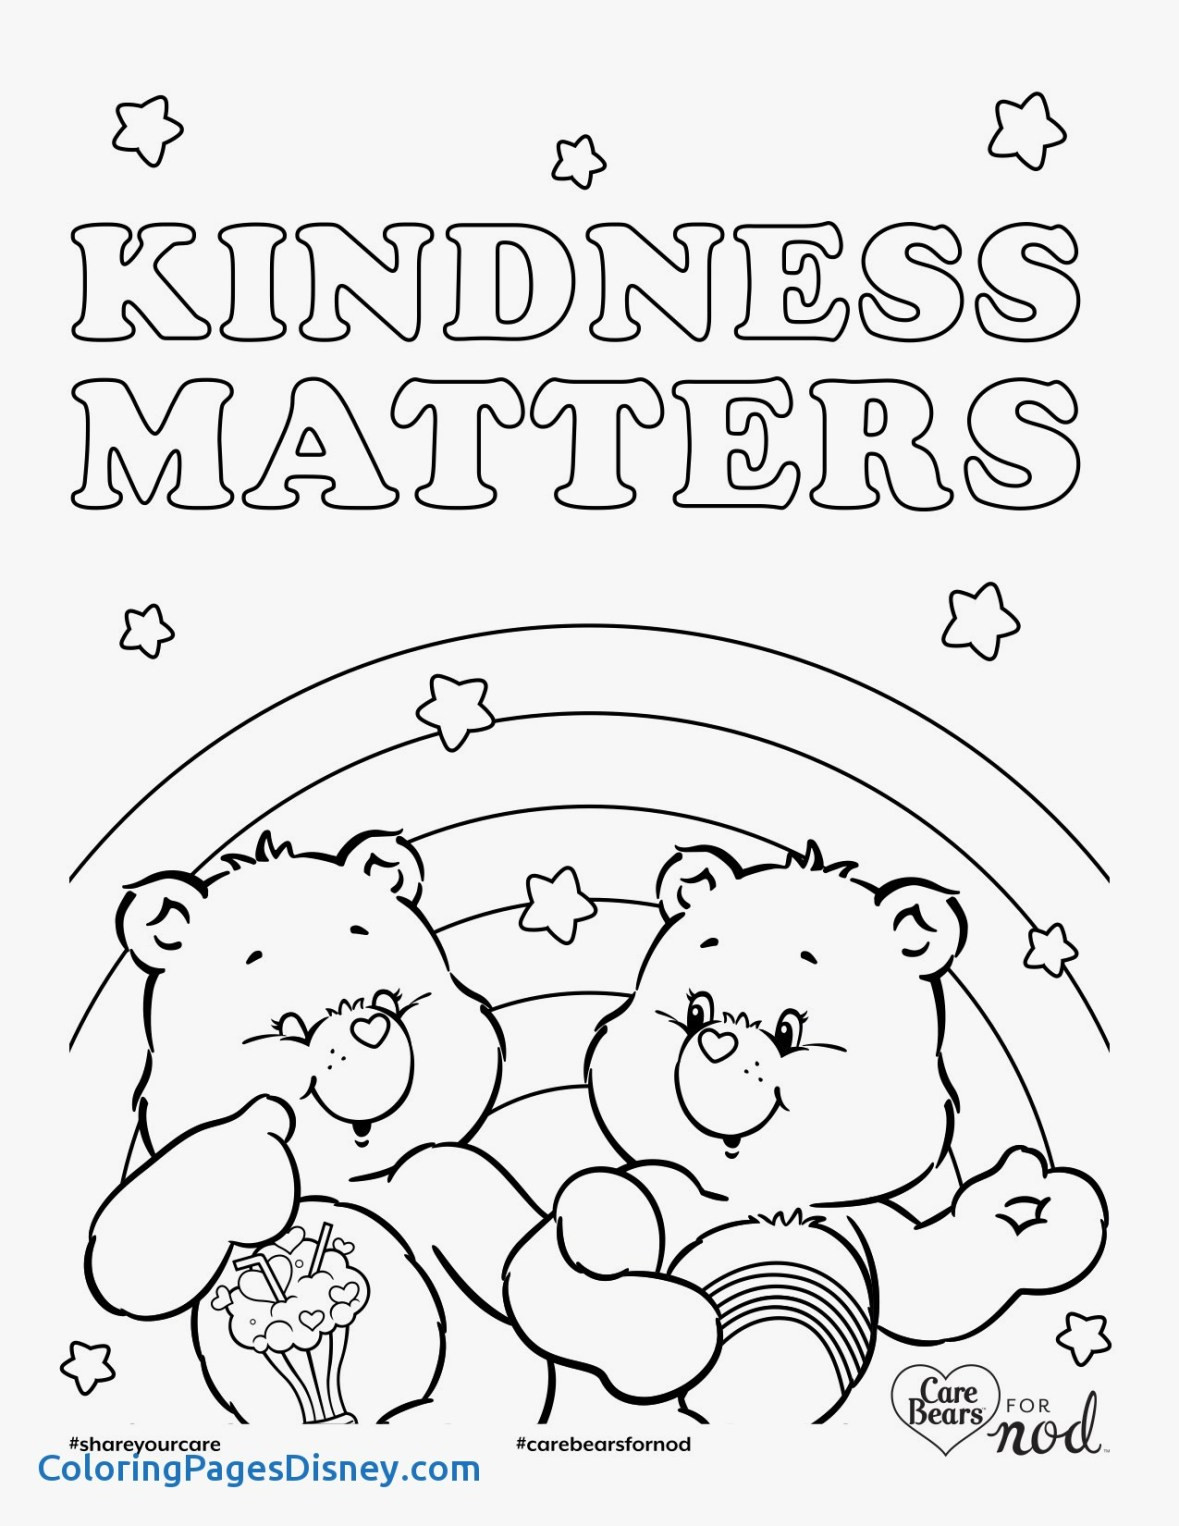 free bible coloring pages to print Download-Free Printable Bible Coloring Pages with Scriptures Elegant Best top 10 Free Printable Bible Verse Coloring 8-m